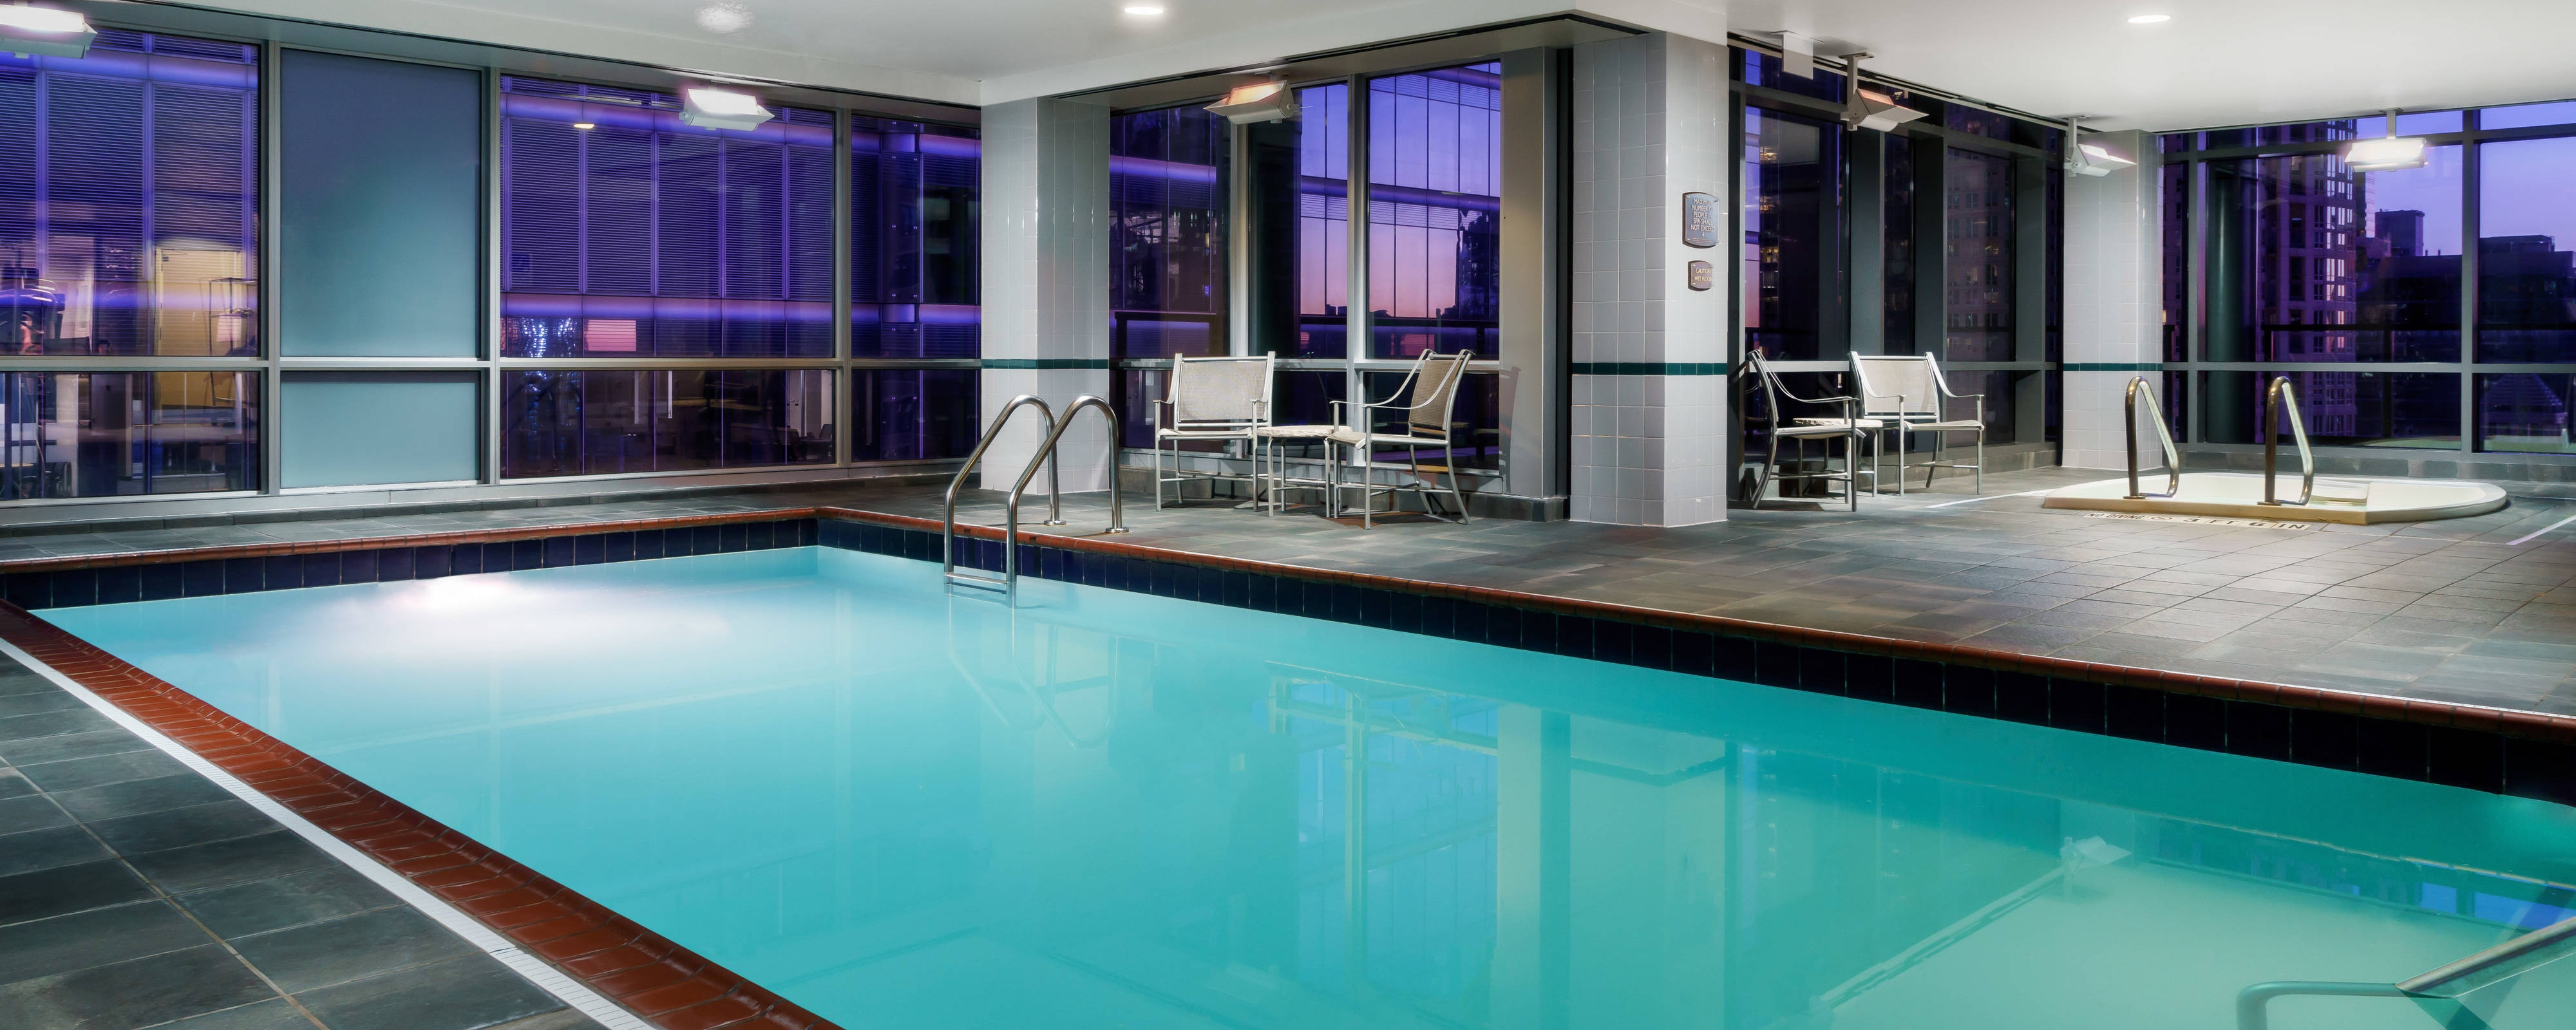 Downtown Chicago Hotels With Pools Residence Inn Chicago